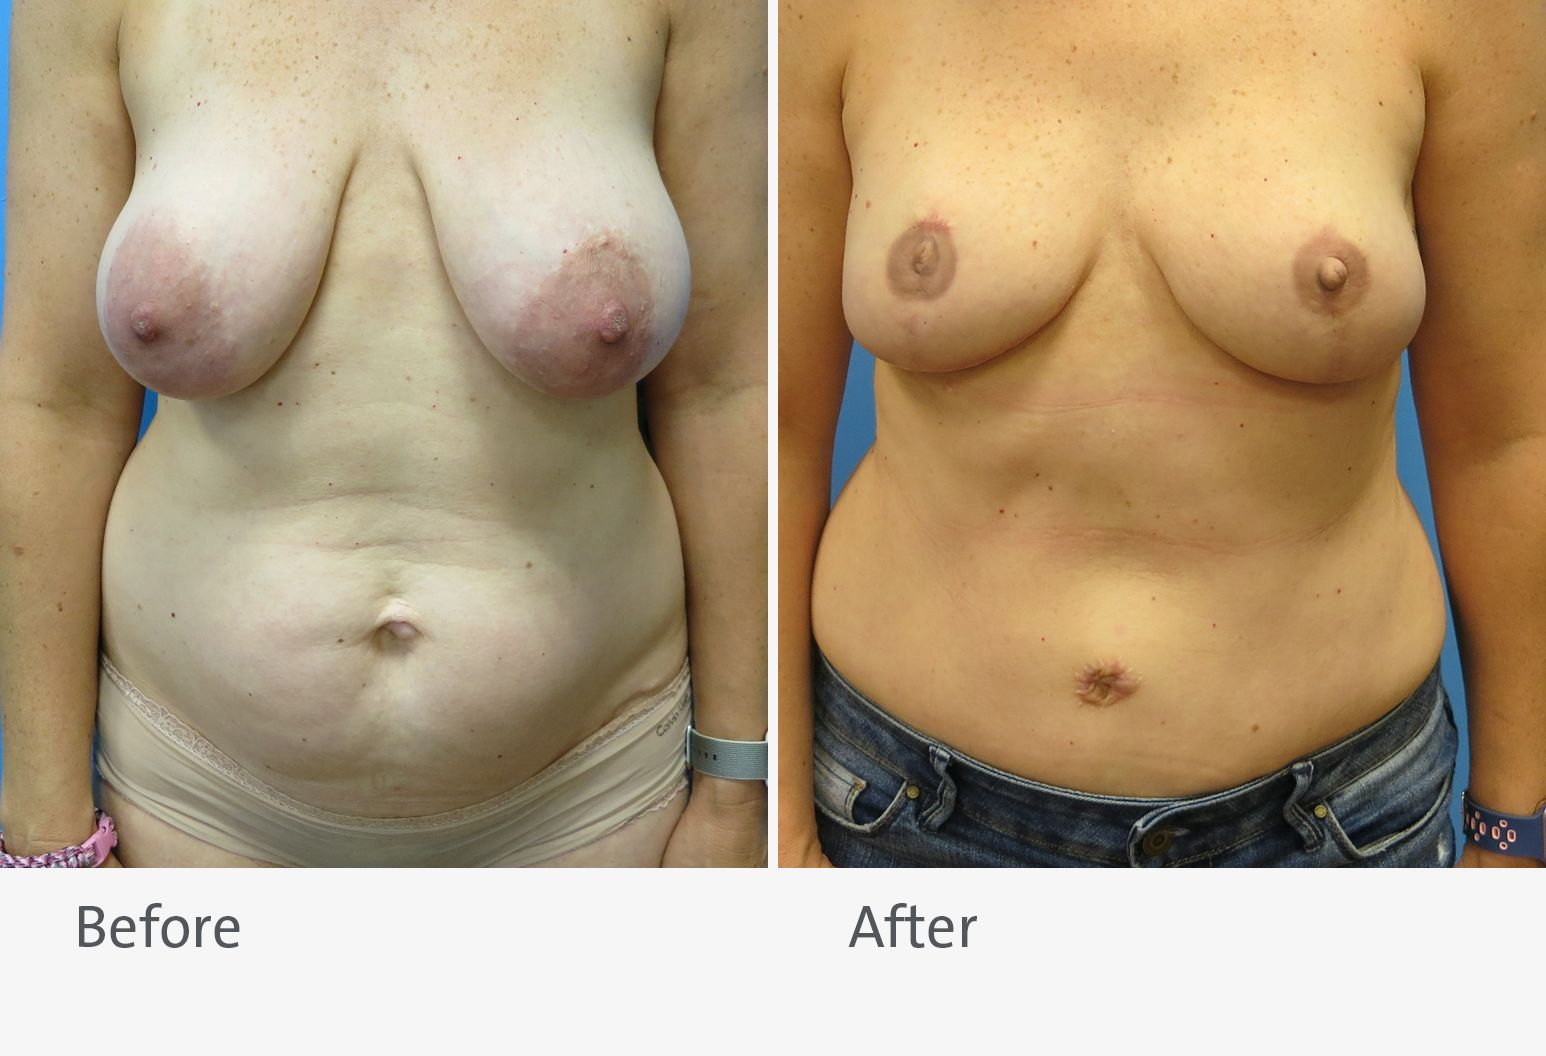 A patient is shown before and after breast reconstruction with a DIEP flap. On the left is the patient before the surgery with large, drooping breasts, and on the right is the patient after surgery with smaller breasts.